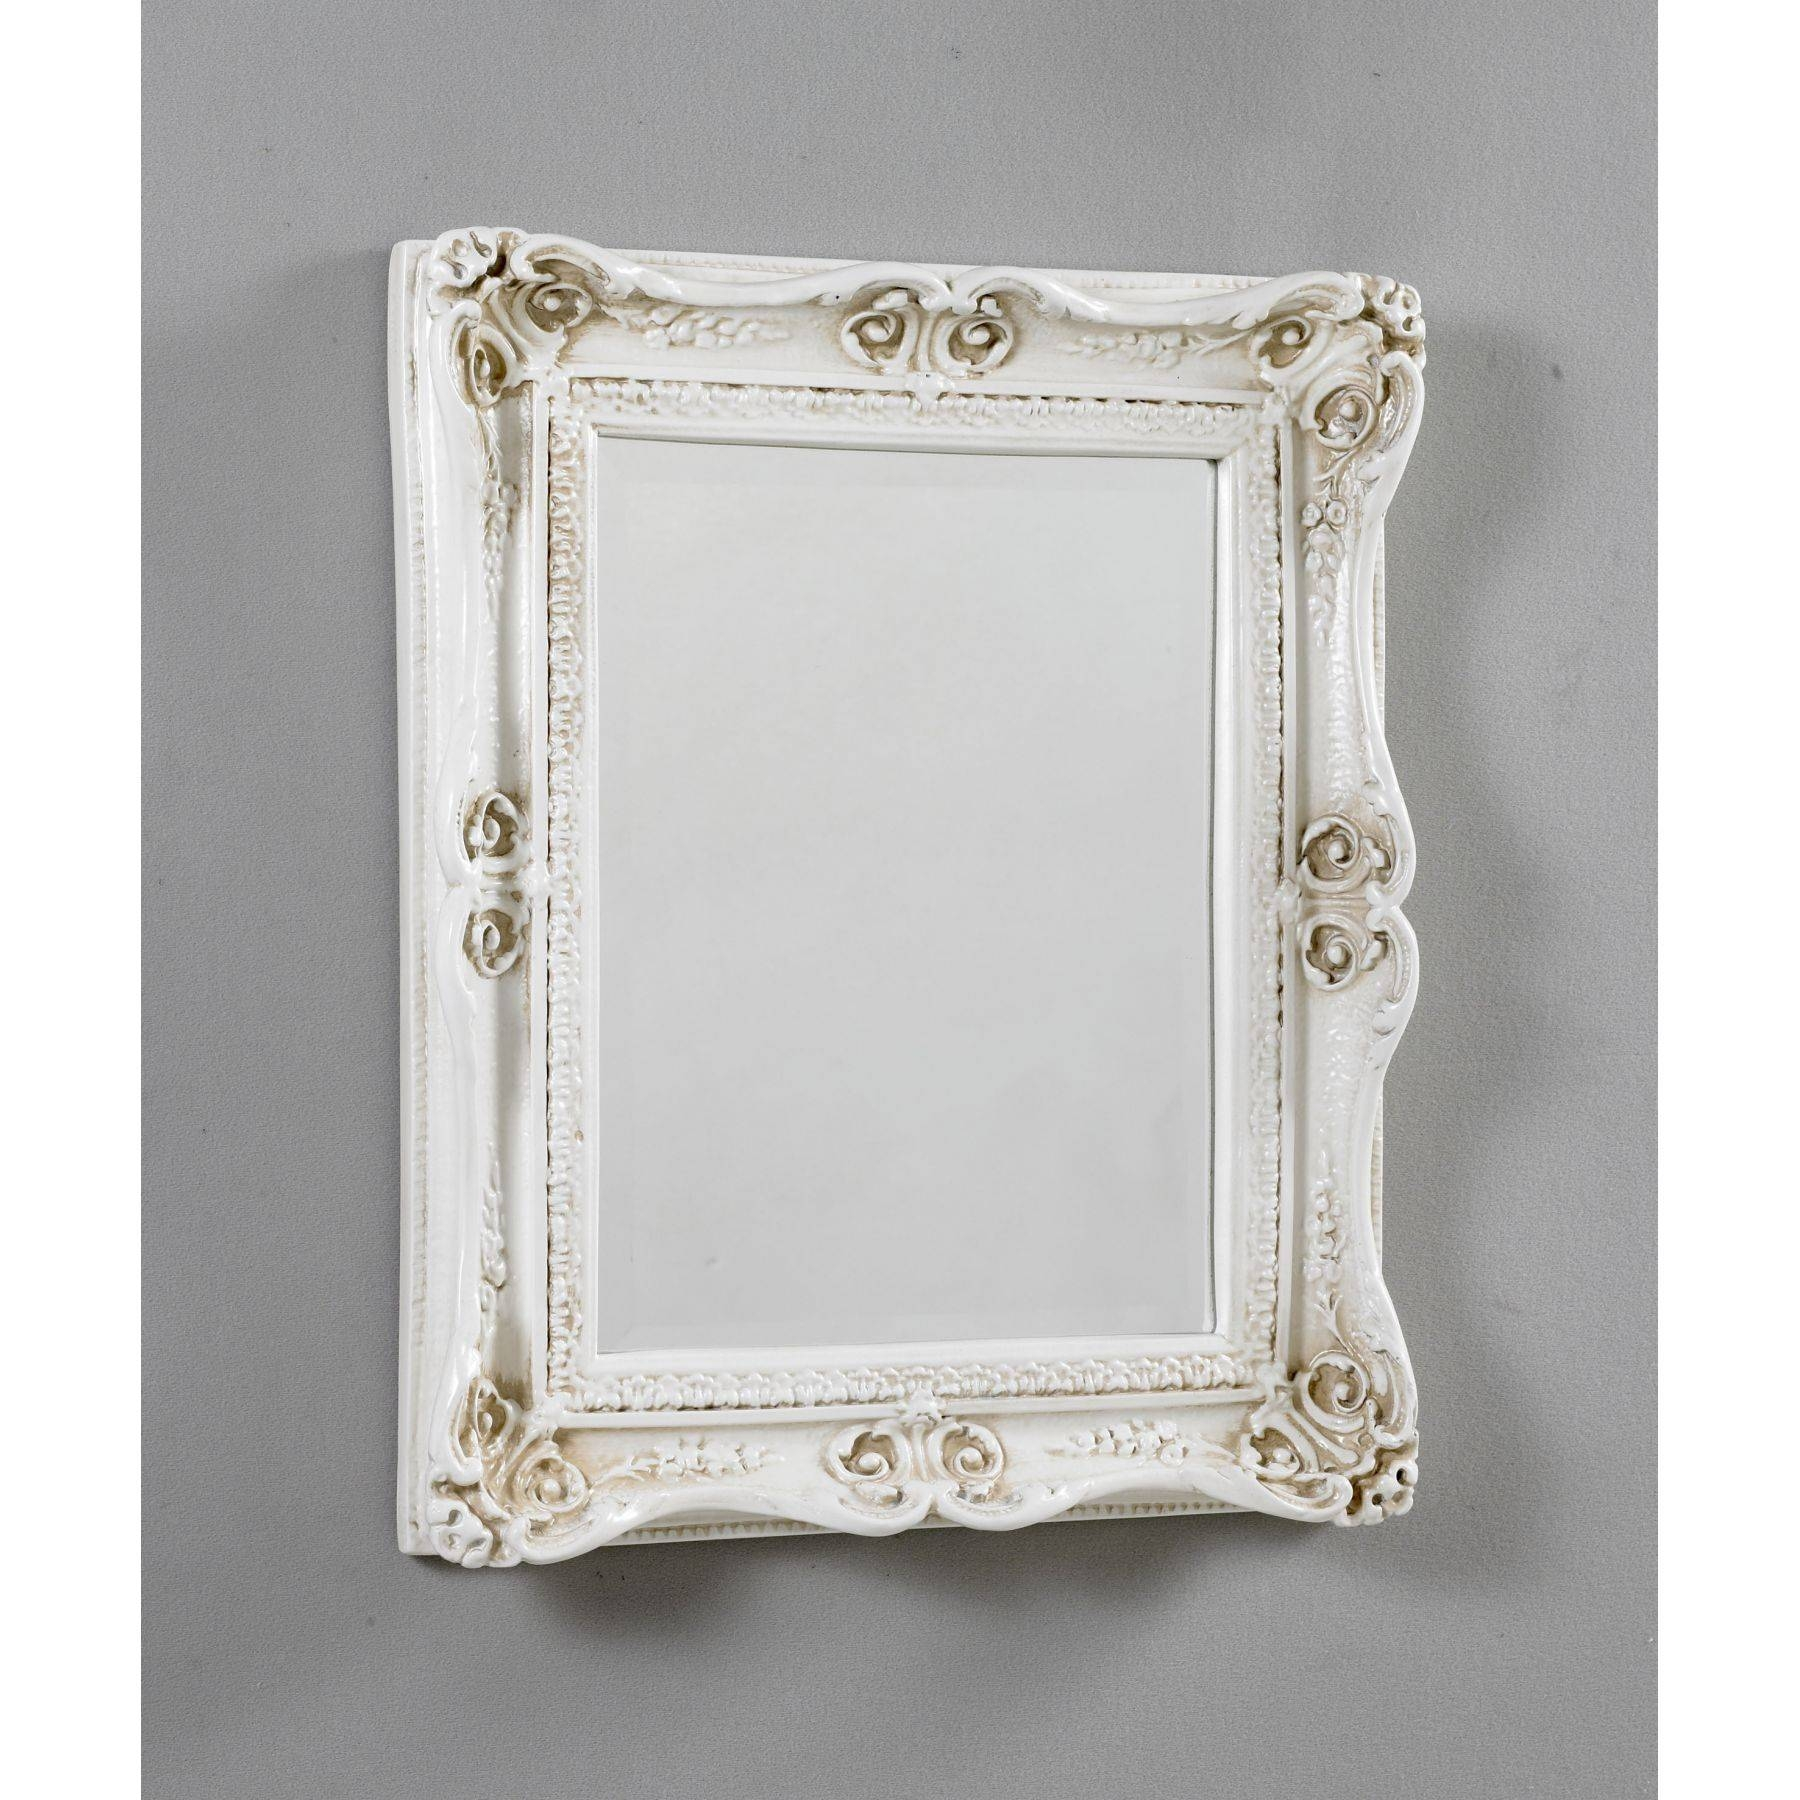 Old Mirrors For Sale 105 Fascinating Ideas On Antique Mirrors pertaining to White Antique Mirrors (Image 22 of 25)